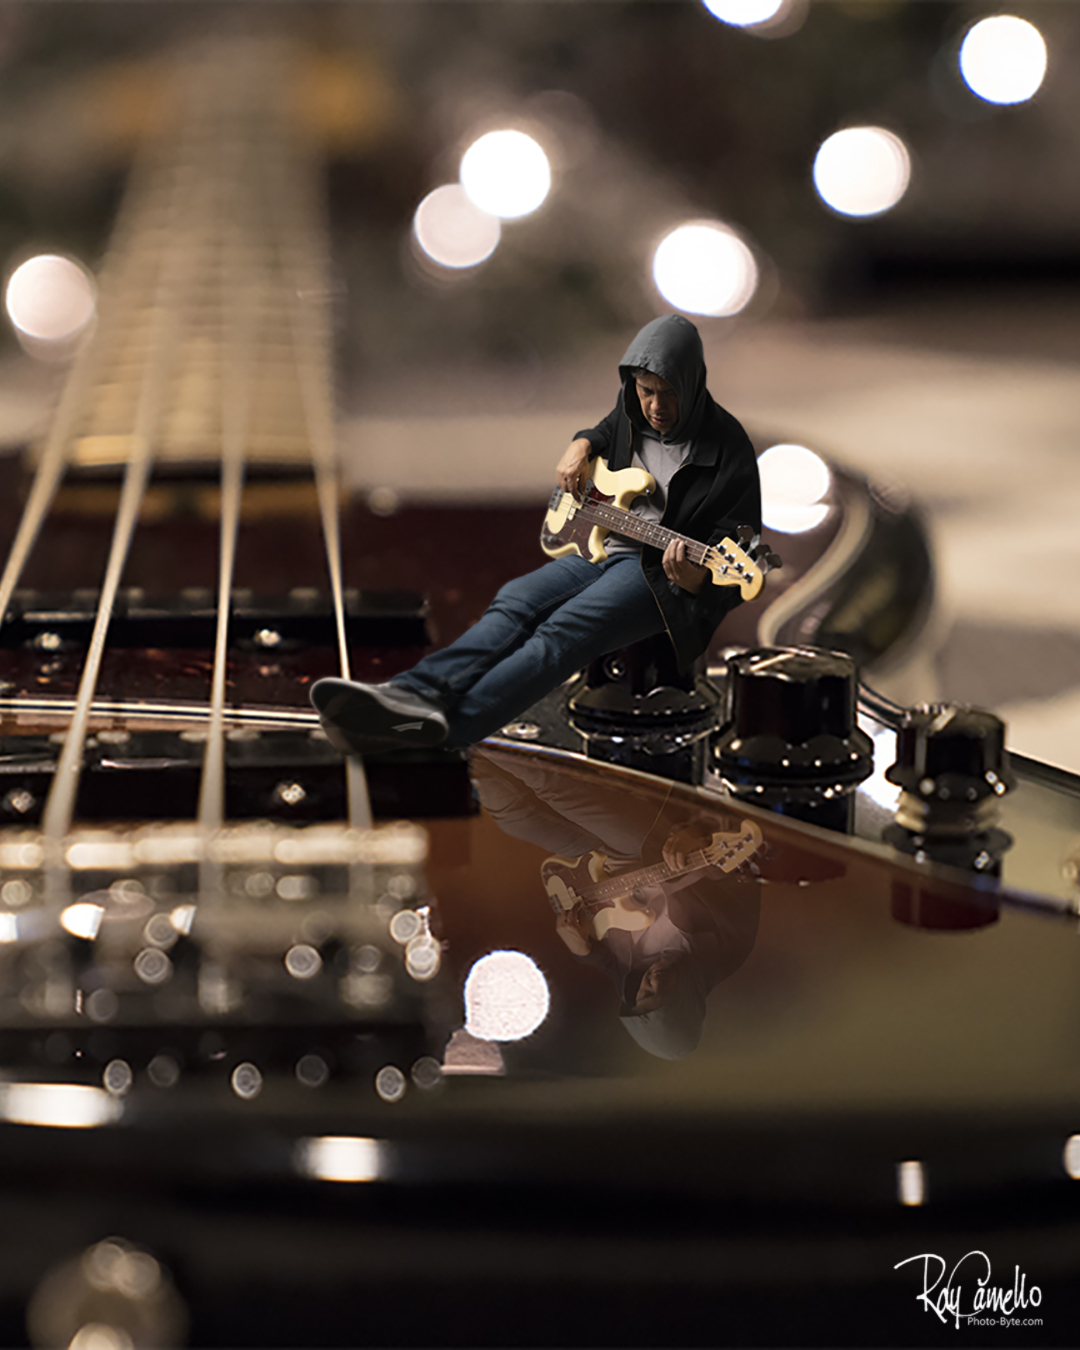 Ray Camello: About me in music. Self-Portrait of my with my Fender Jazz and Fender P basses.